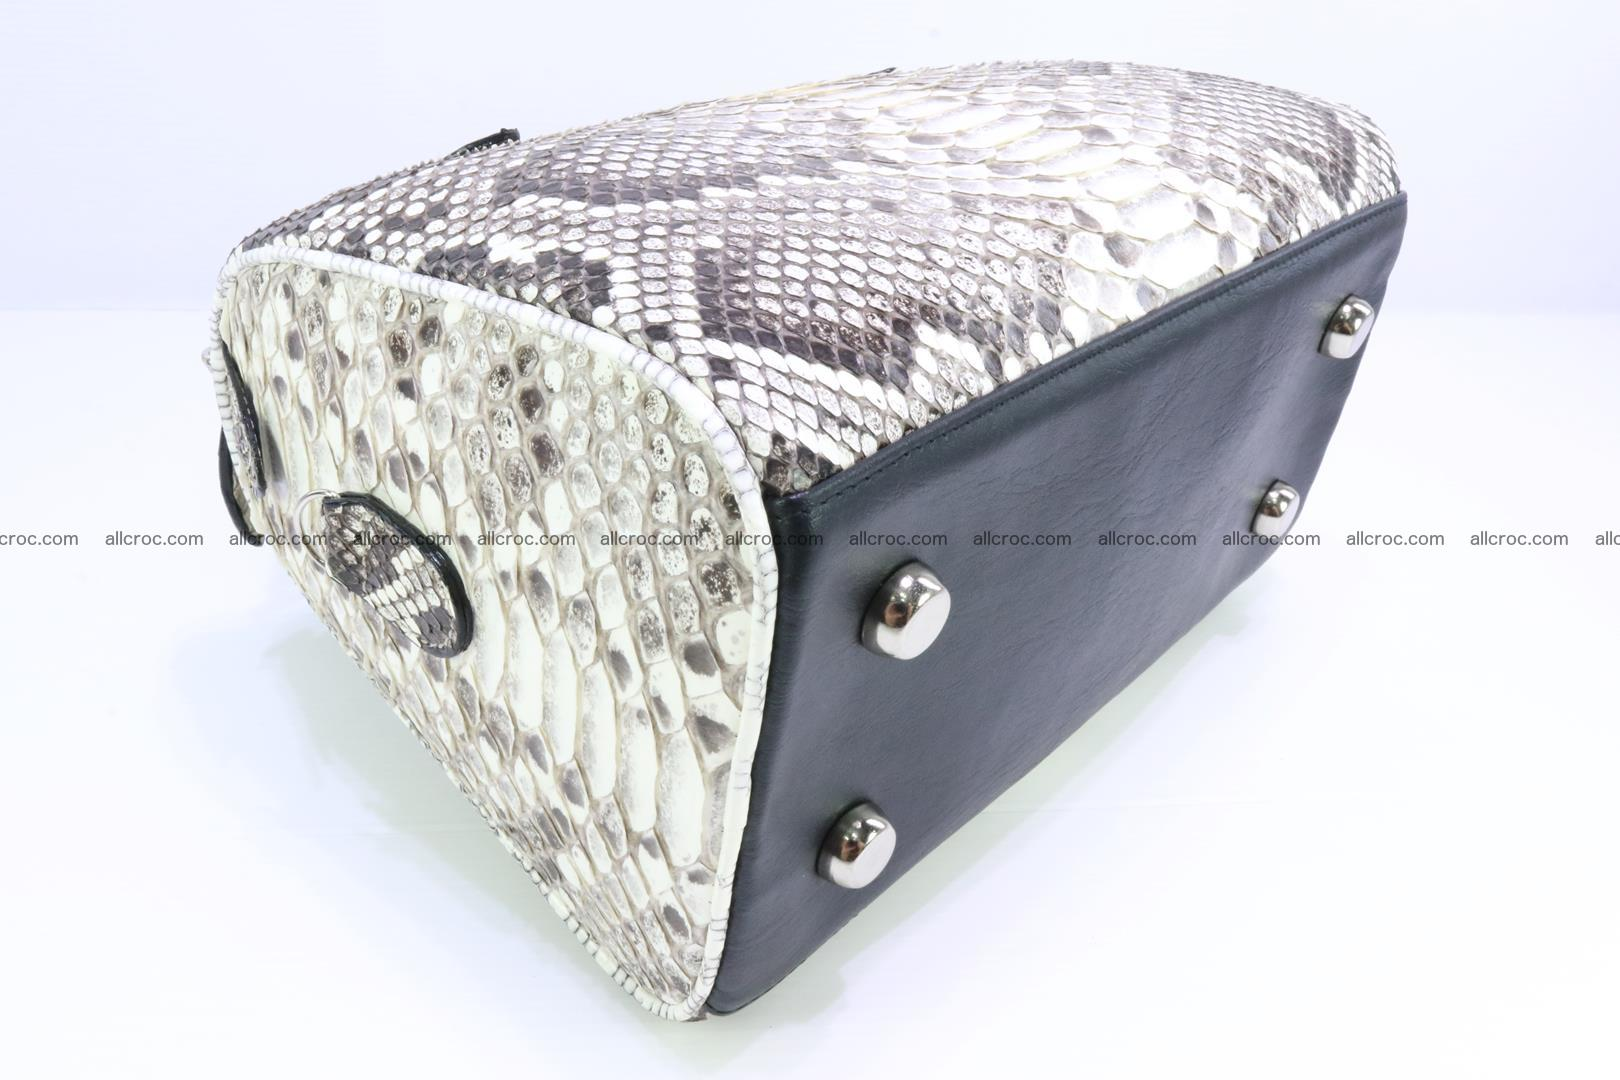 Ladies handbag, valise from genuine python skin MINI 209 Foto 8